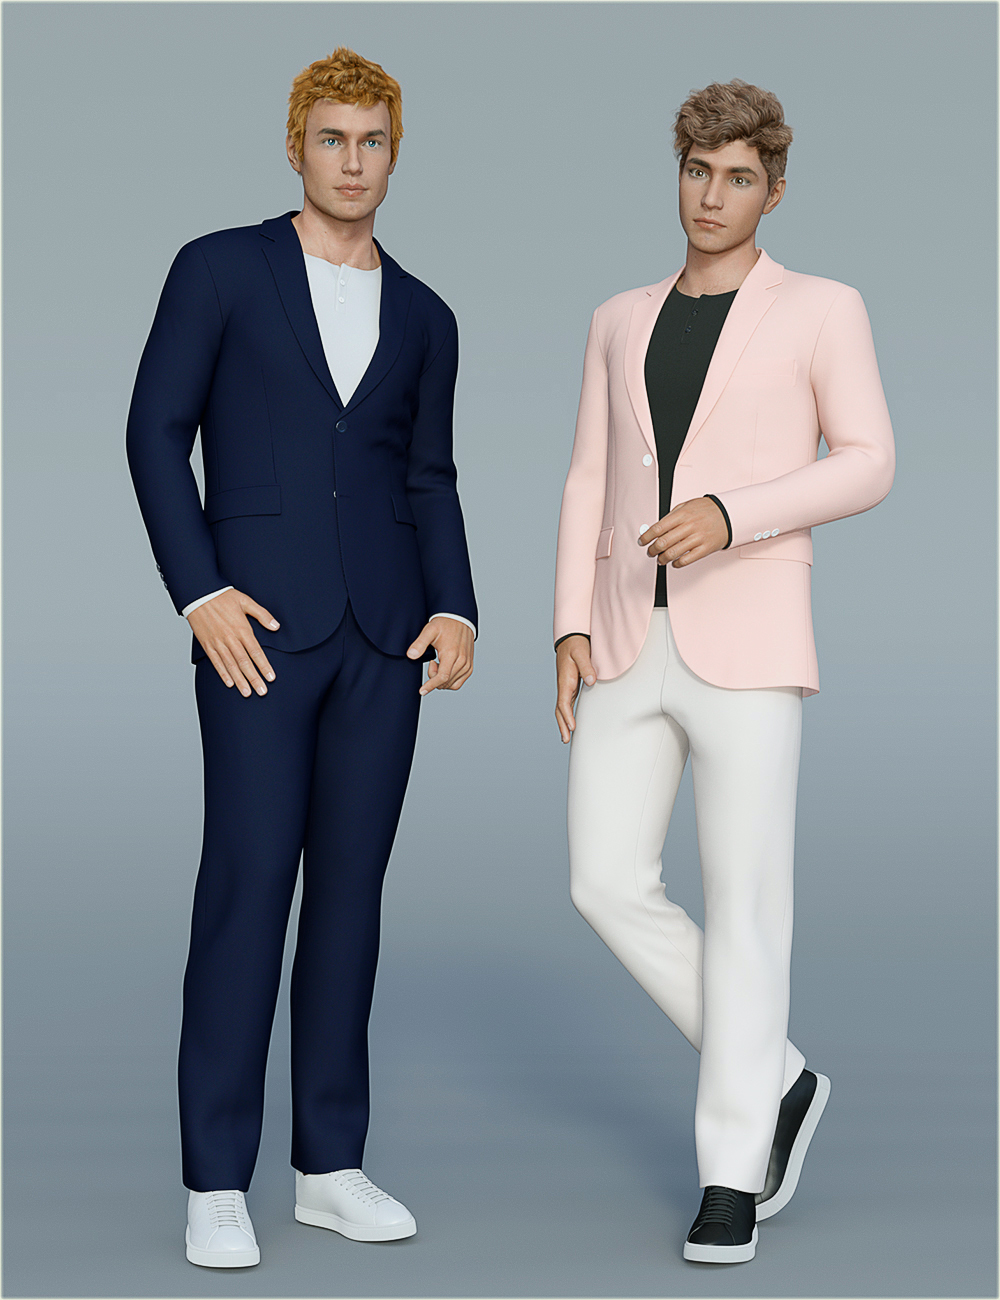 dForce H&C Spring Casual Suits for Genesis 8 Male(s) by: IH Kang, 3D Models by Daz 3D